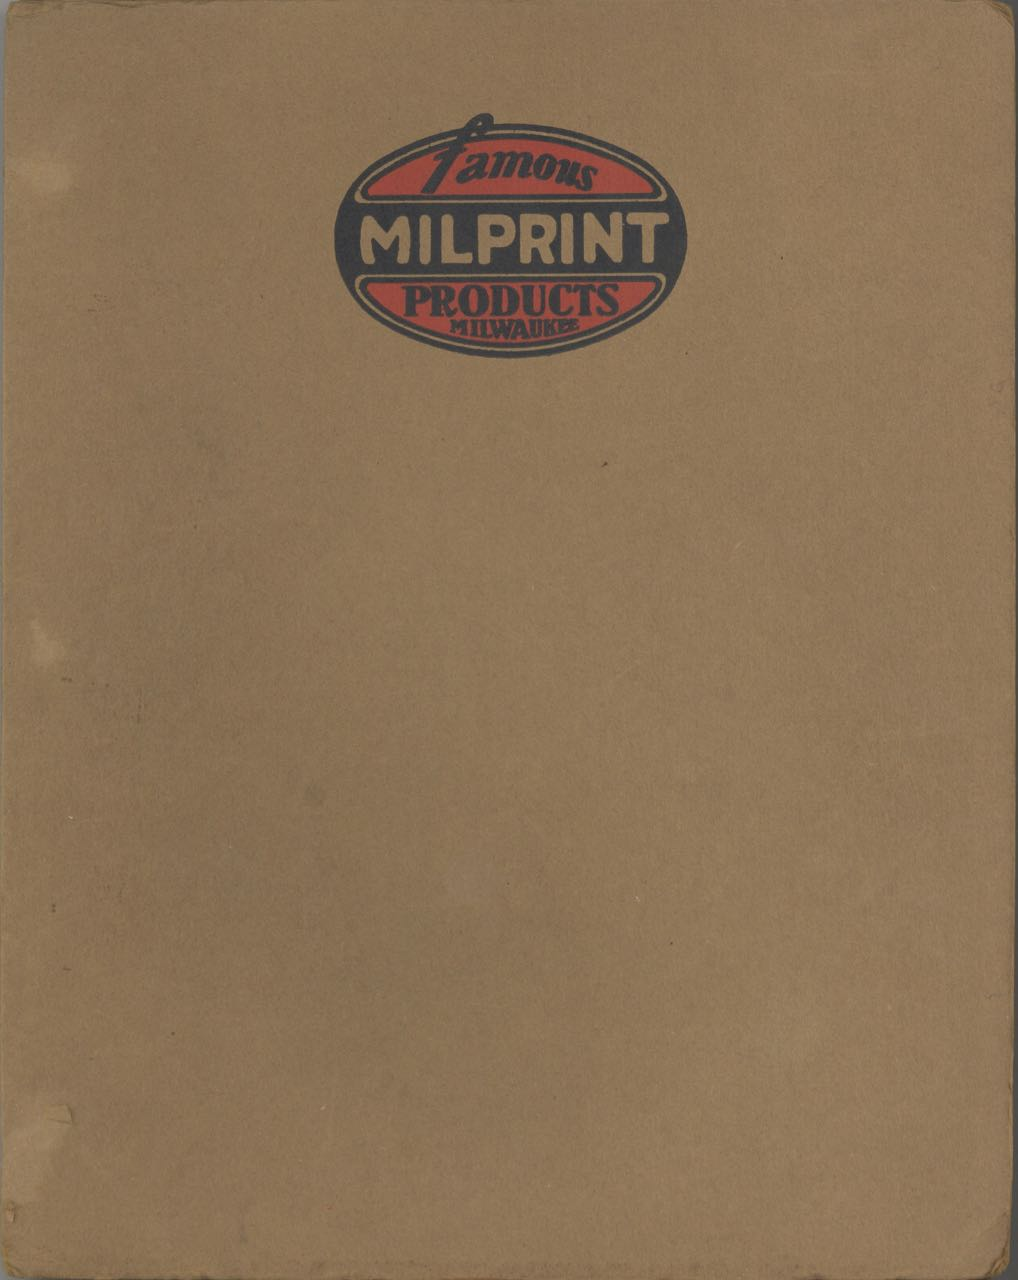 Famous Milprint Products, Milwaukee [title from cover]. Trade catalogue – Packaging, Milprint Products, Wisc Milwaukee.